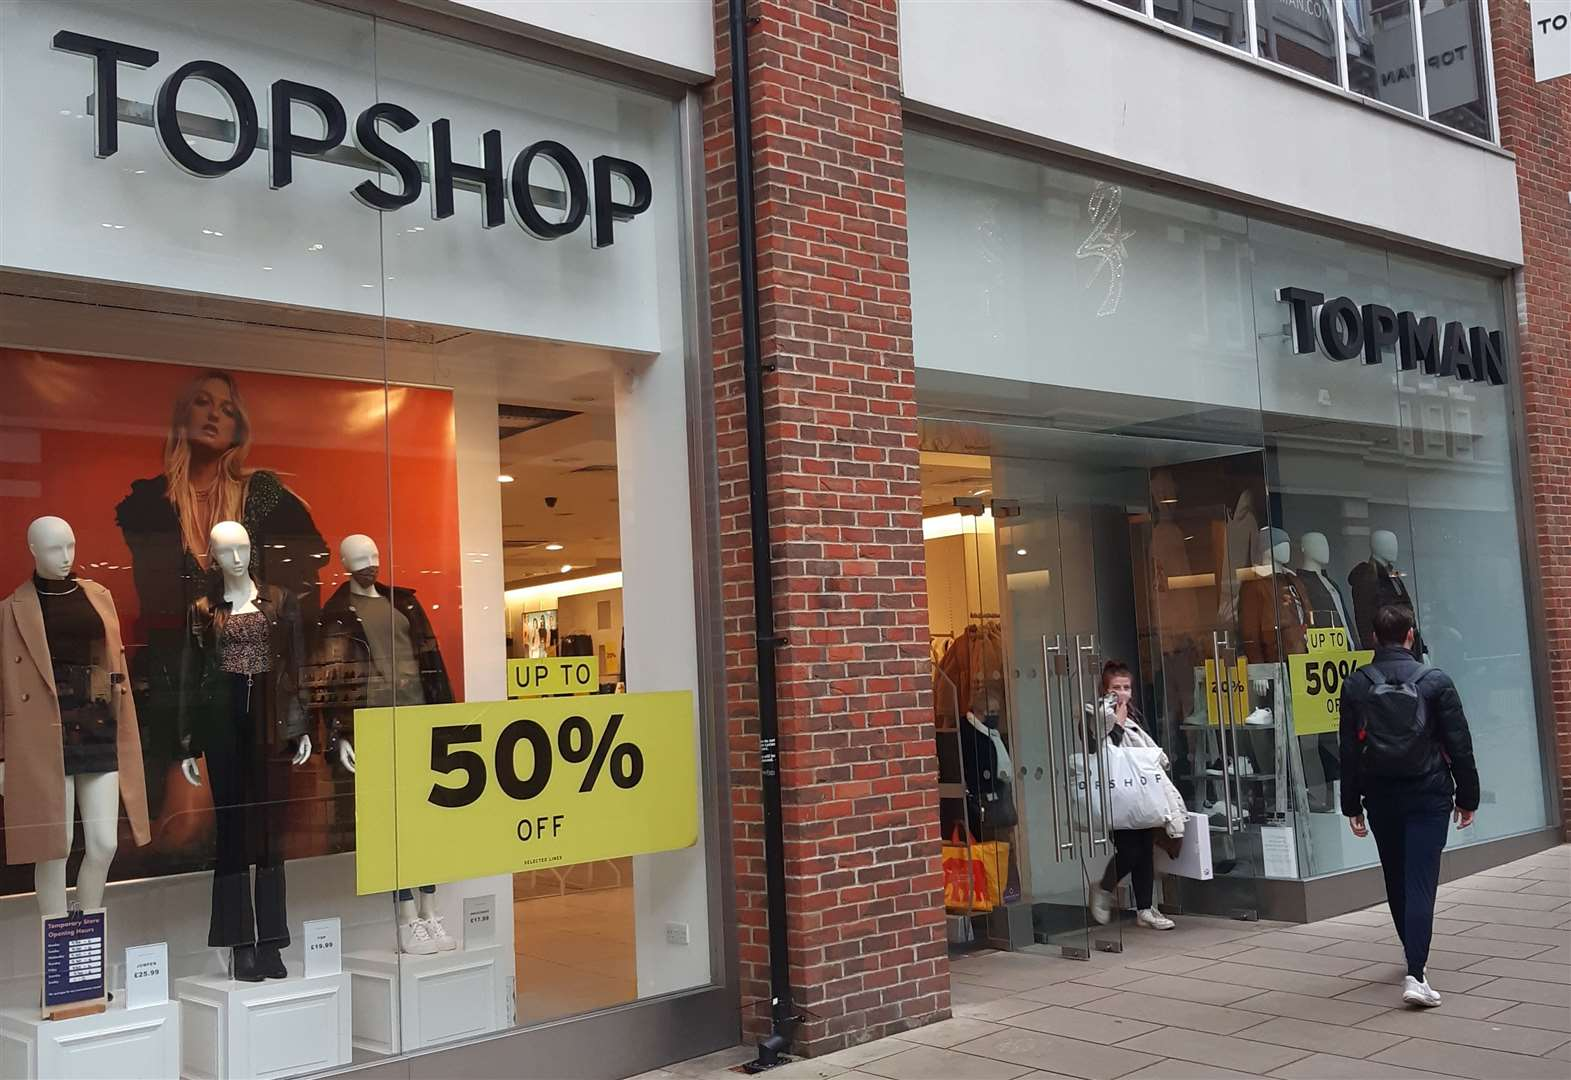 Topshop and Topman in Whitefriars are at risk after Arcadia's collapse into administration